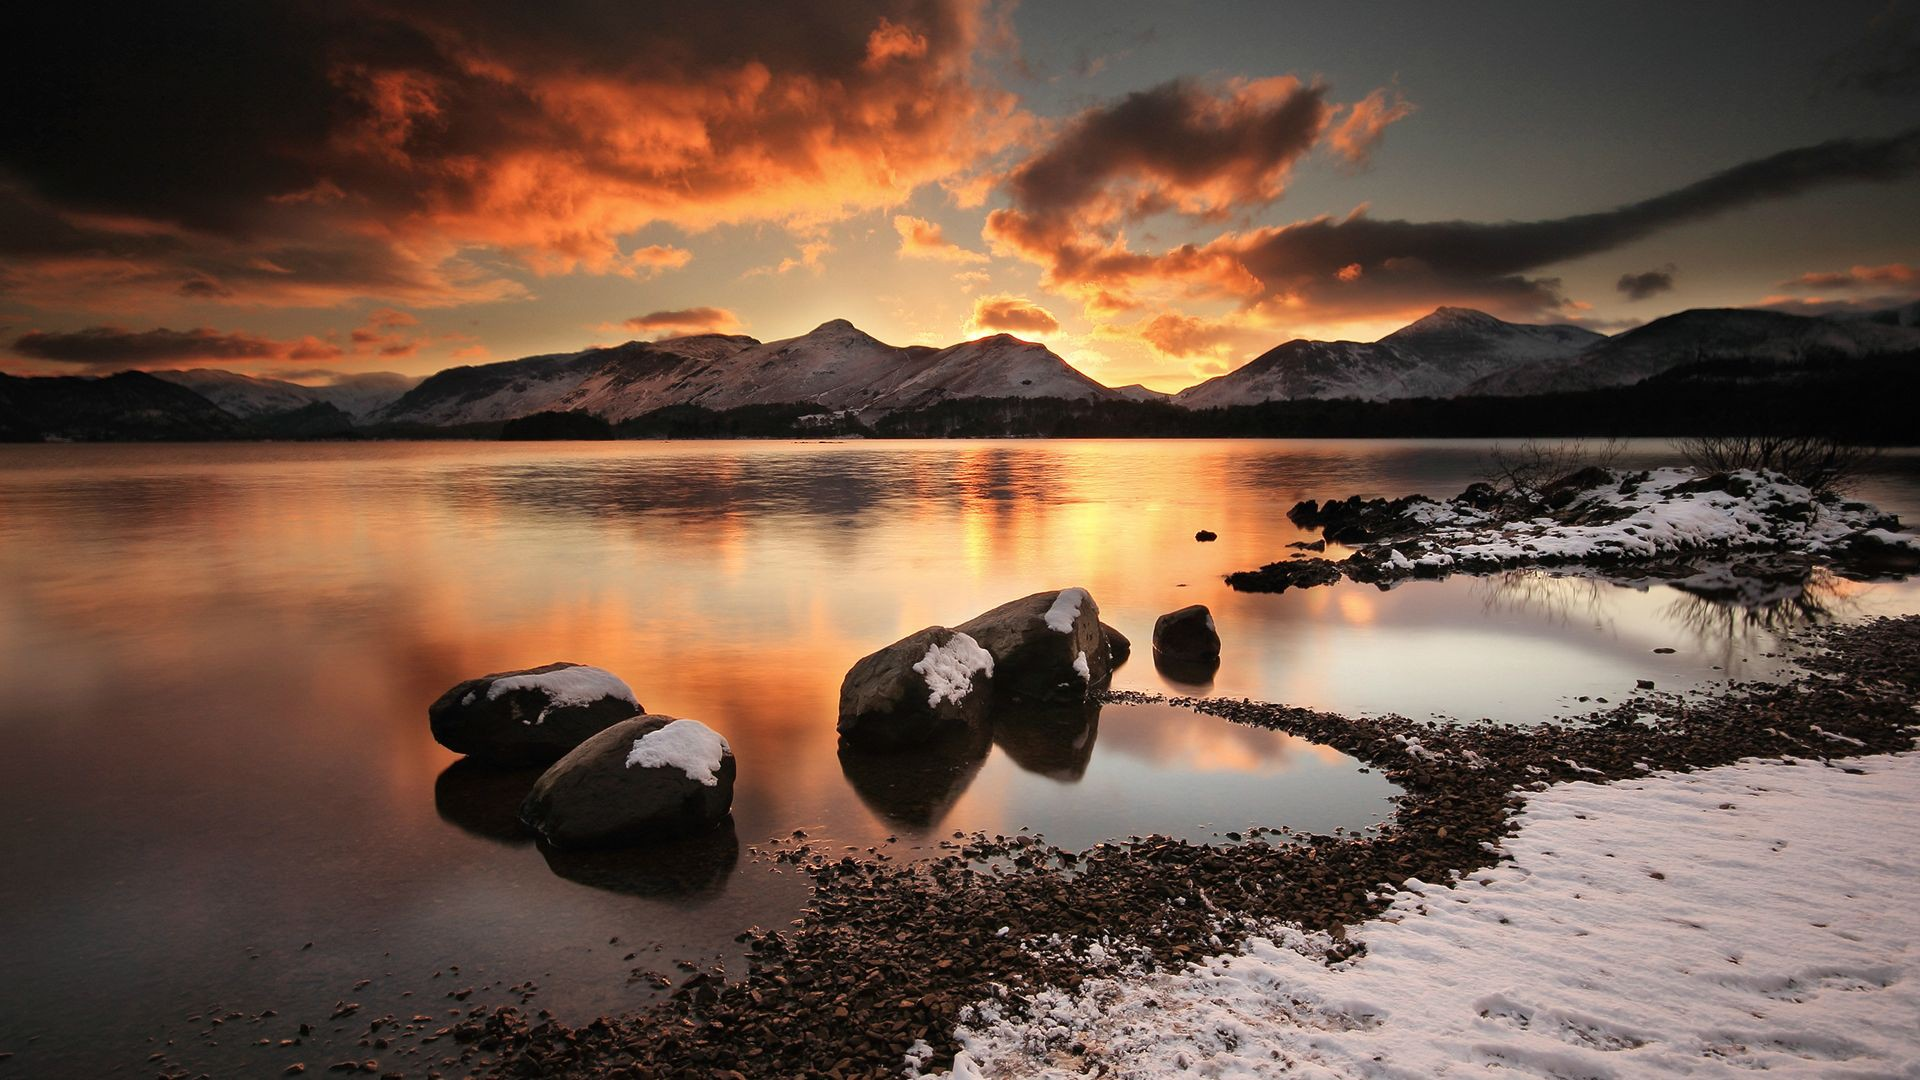 The lake at sunset, mountain, rocks, andscape, sunset, lake, hd wallpaper. Mountain Lake Sunset Hd Wallpaper 1920x1080 Id 61155 Wallpapervortex Com